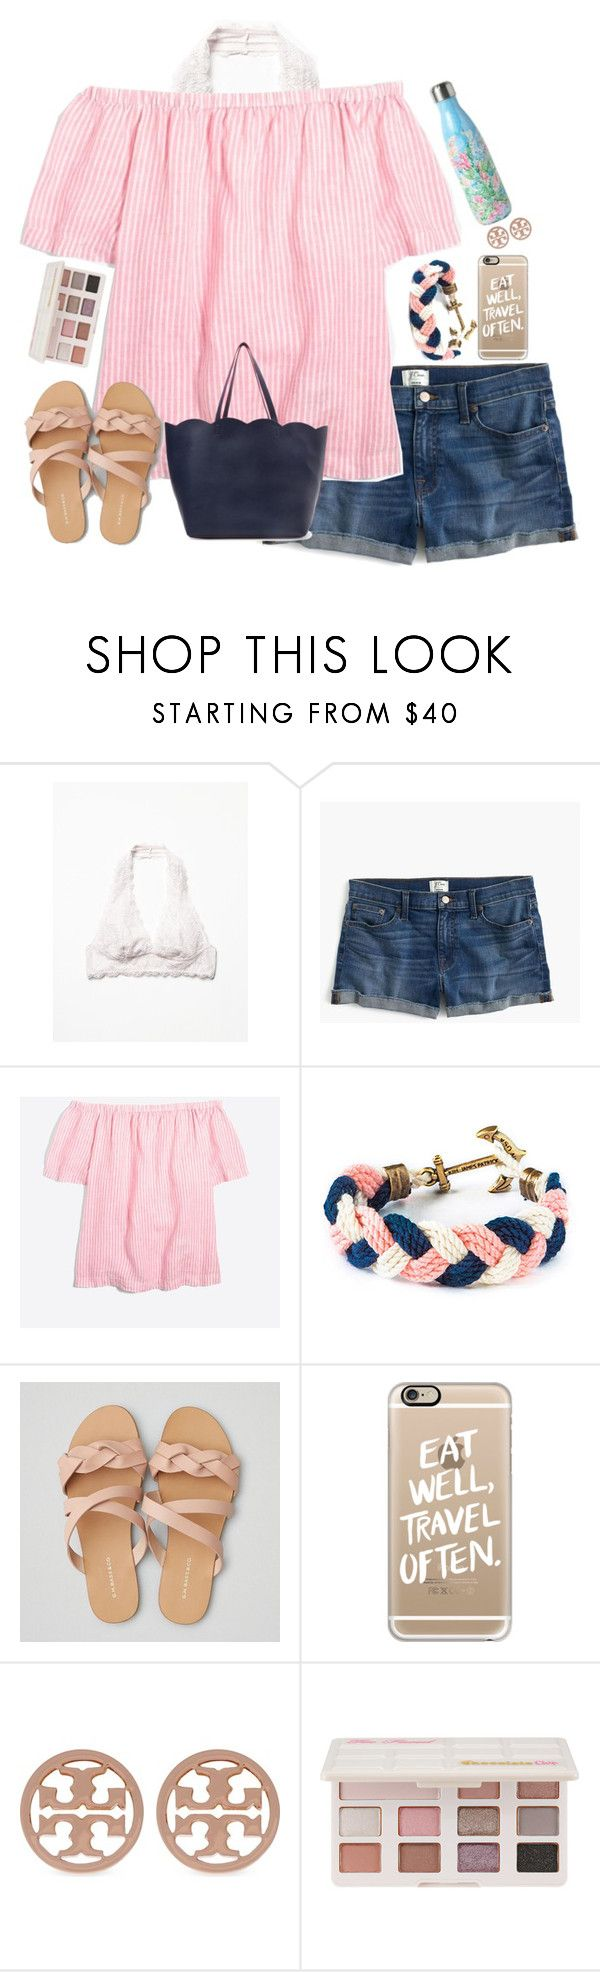 """""""I've got a thing for college campuses... anyone else? Rtd"""" by lbkatie17 ❤ liked on Polyvore featuring Free People, J.Crew, Kiel James Patrick, Lilly Pulitzer, American Eagle Outfitters, Casetify, Tory Burch, Too Faced Cosmetics and Deux Lux"""